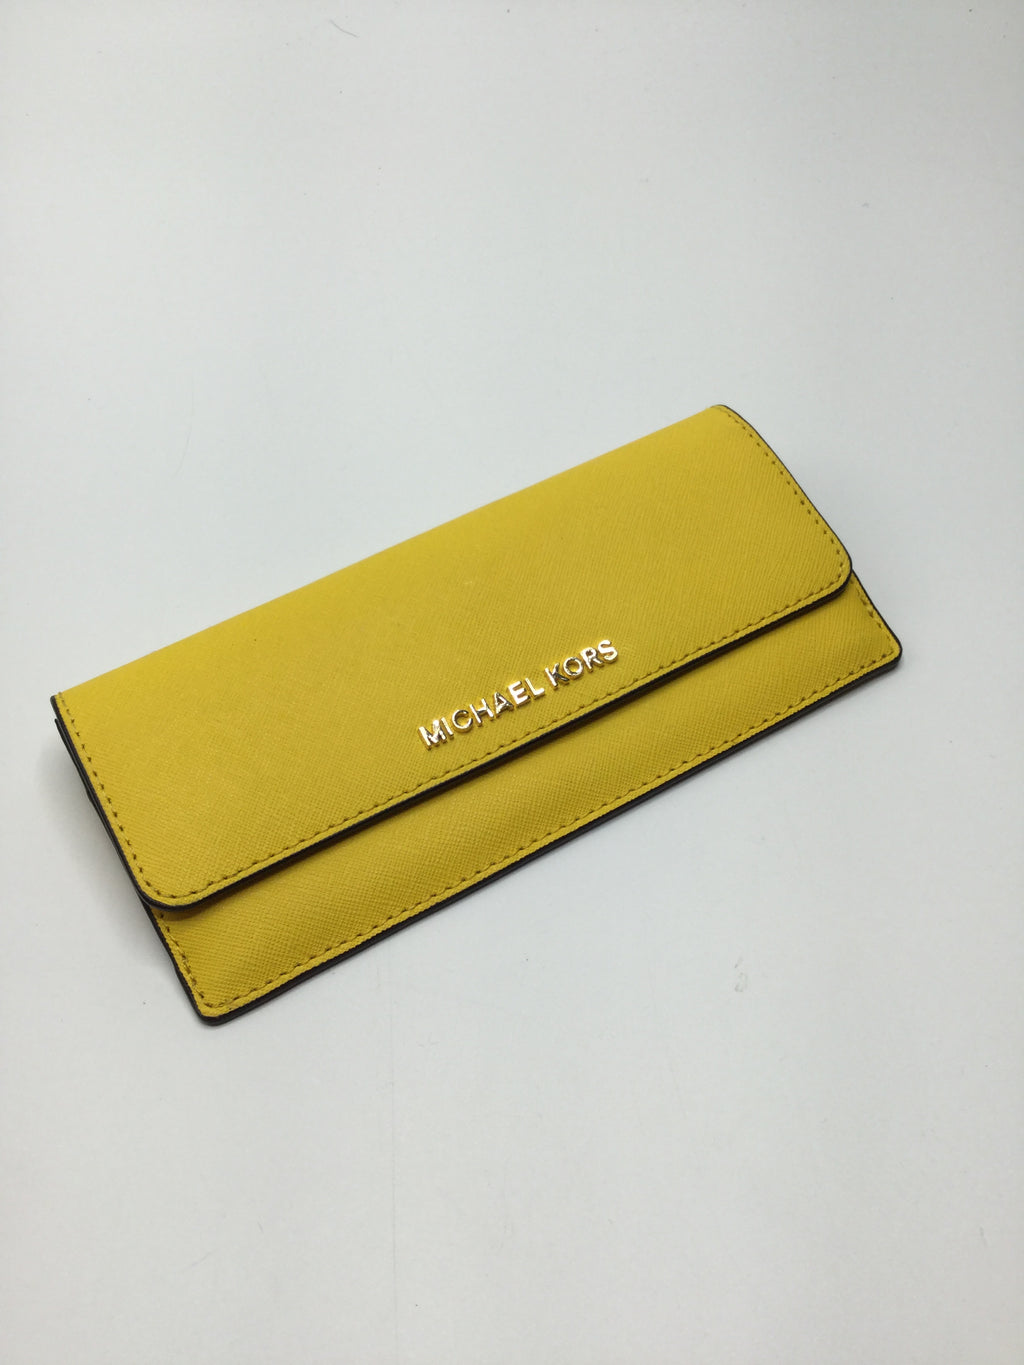 MICHAEL KORS WALLET-